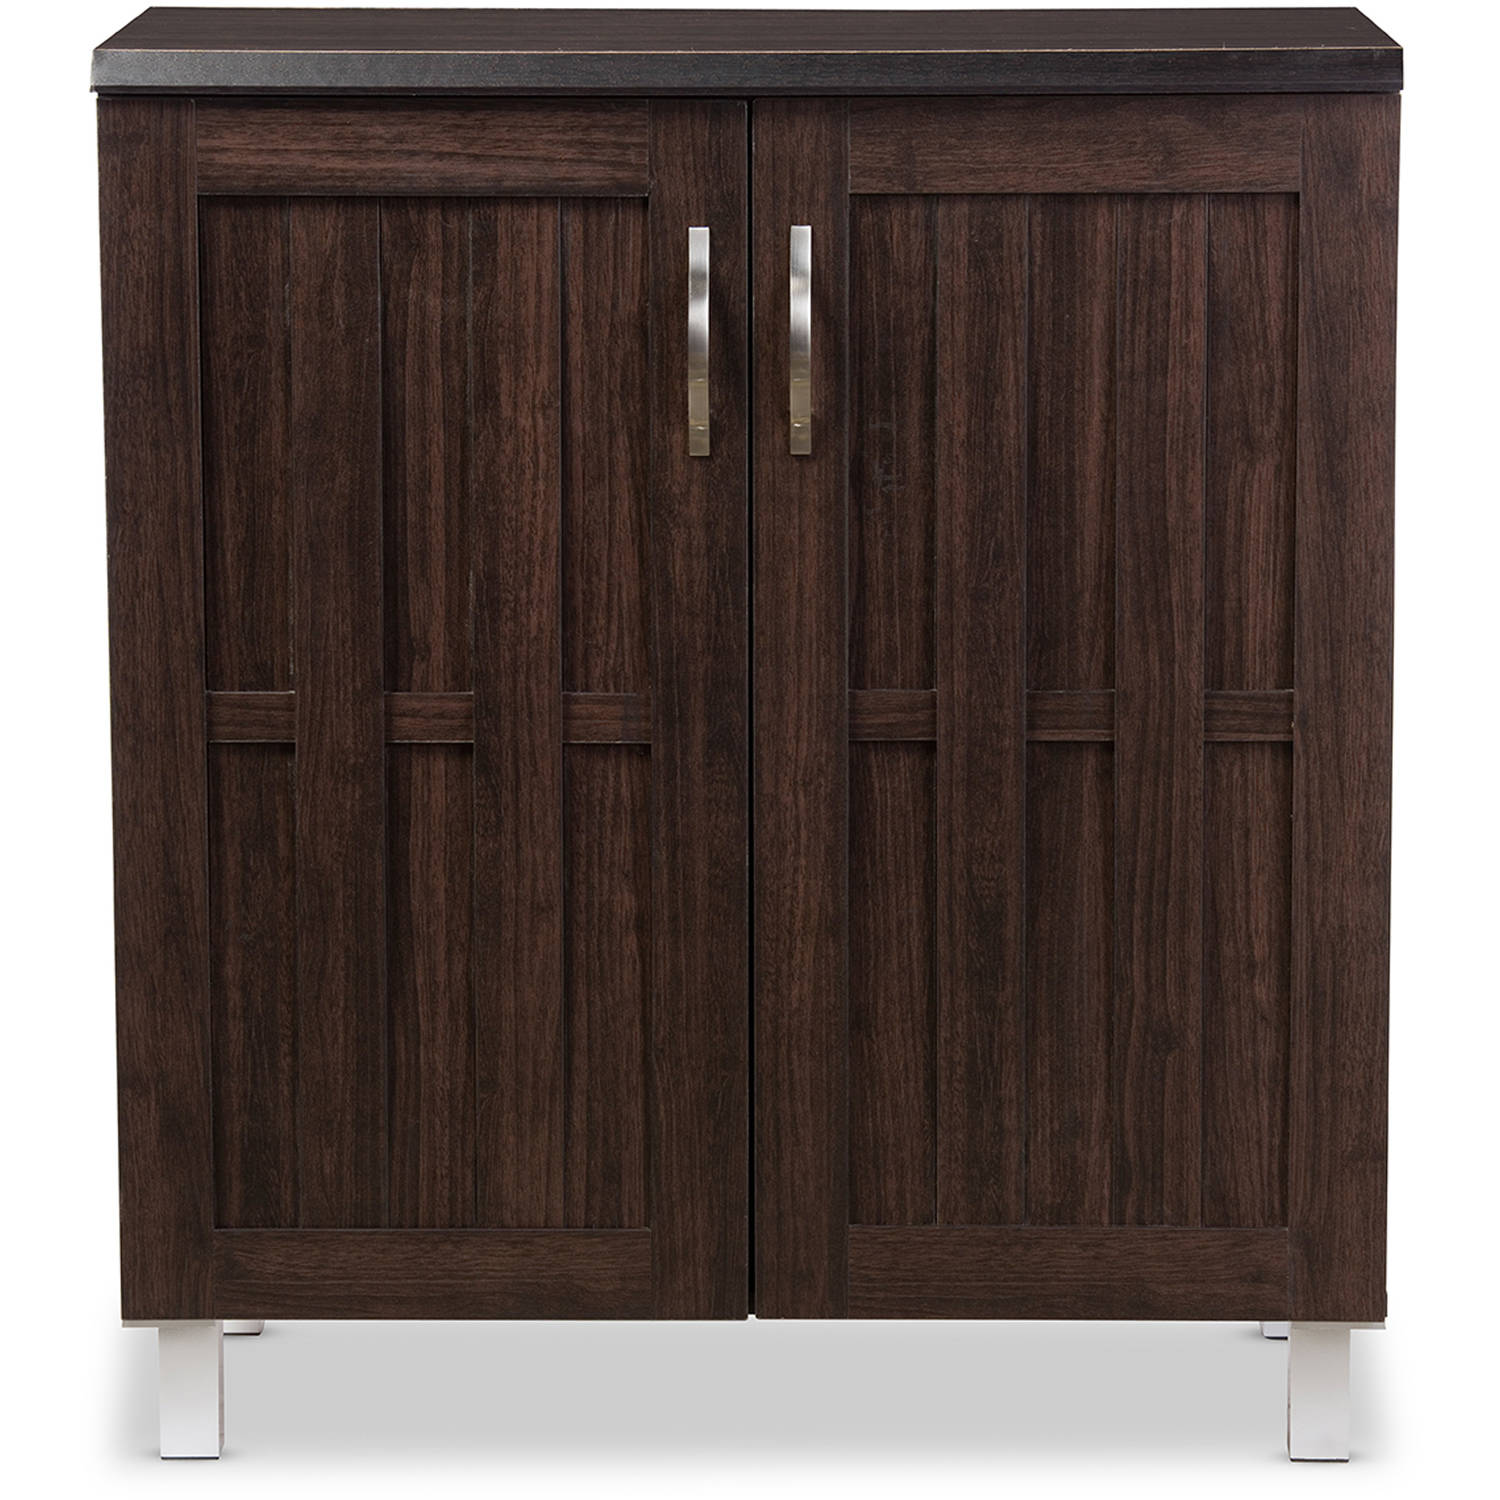 kitchen storage cabinet vintage buffet accent table contemporary dark brown new plastic garden gold knobs bedside drawers kmart tiffany lights battery powered end lamps blue